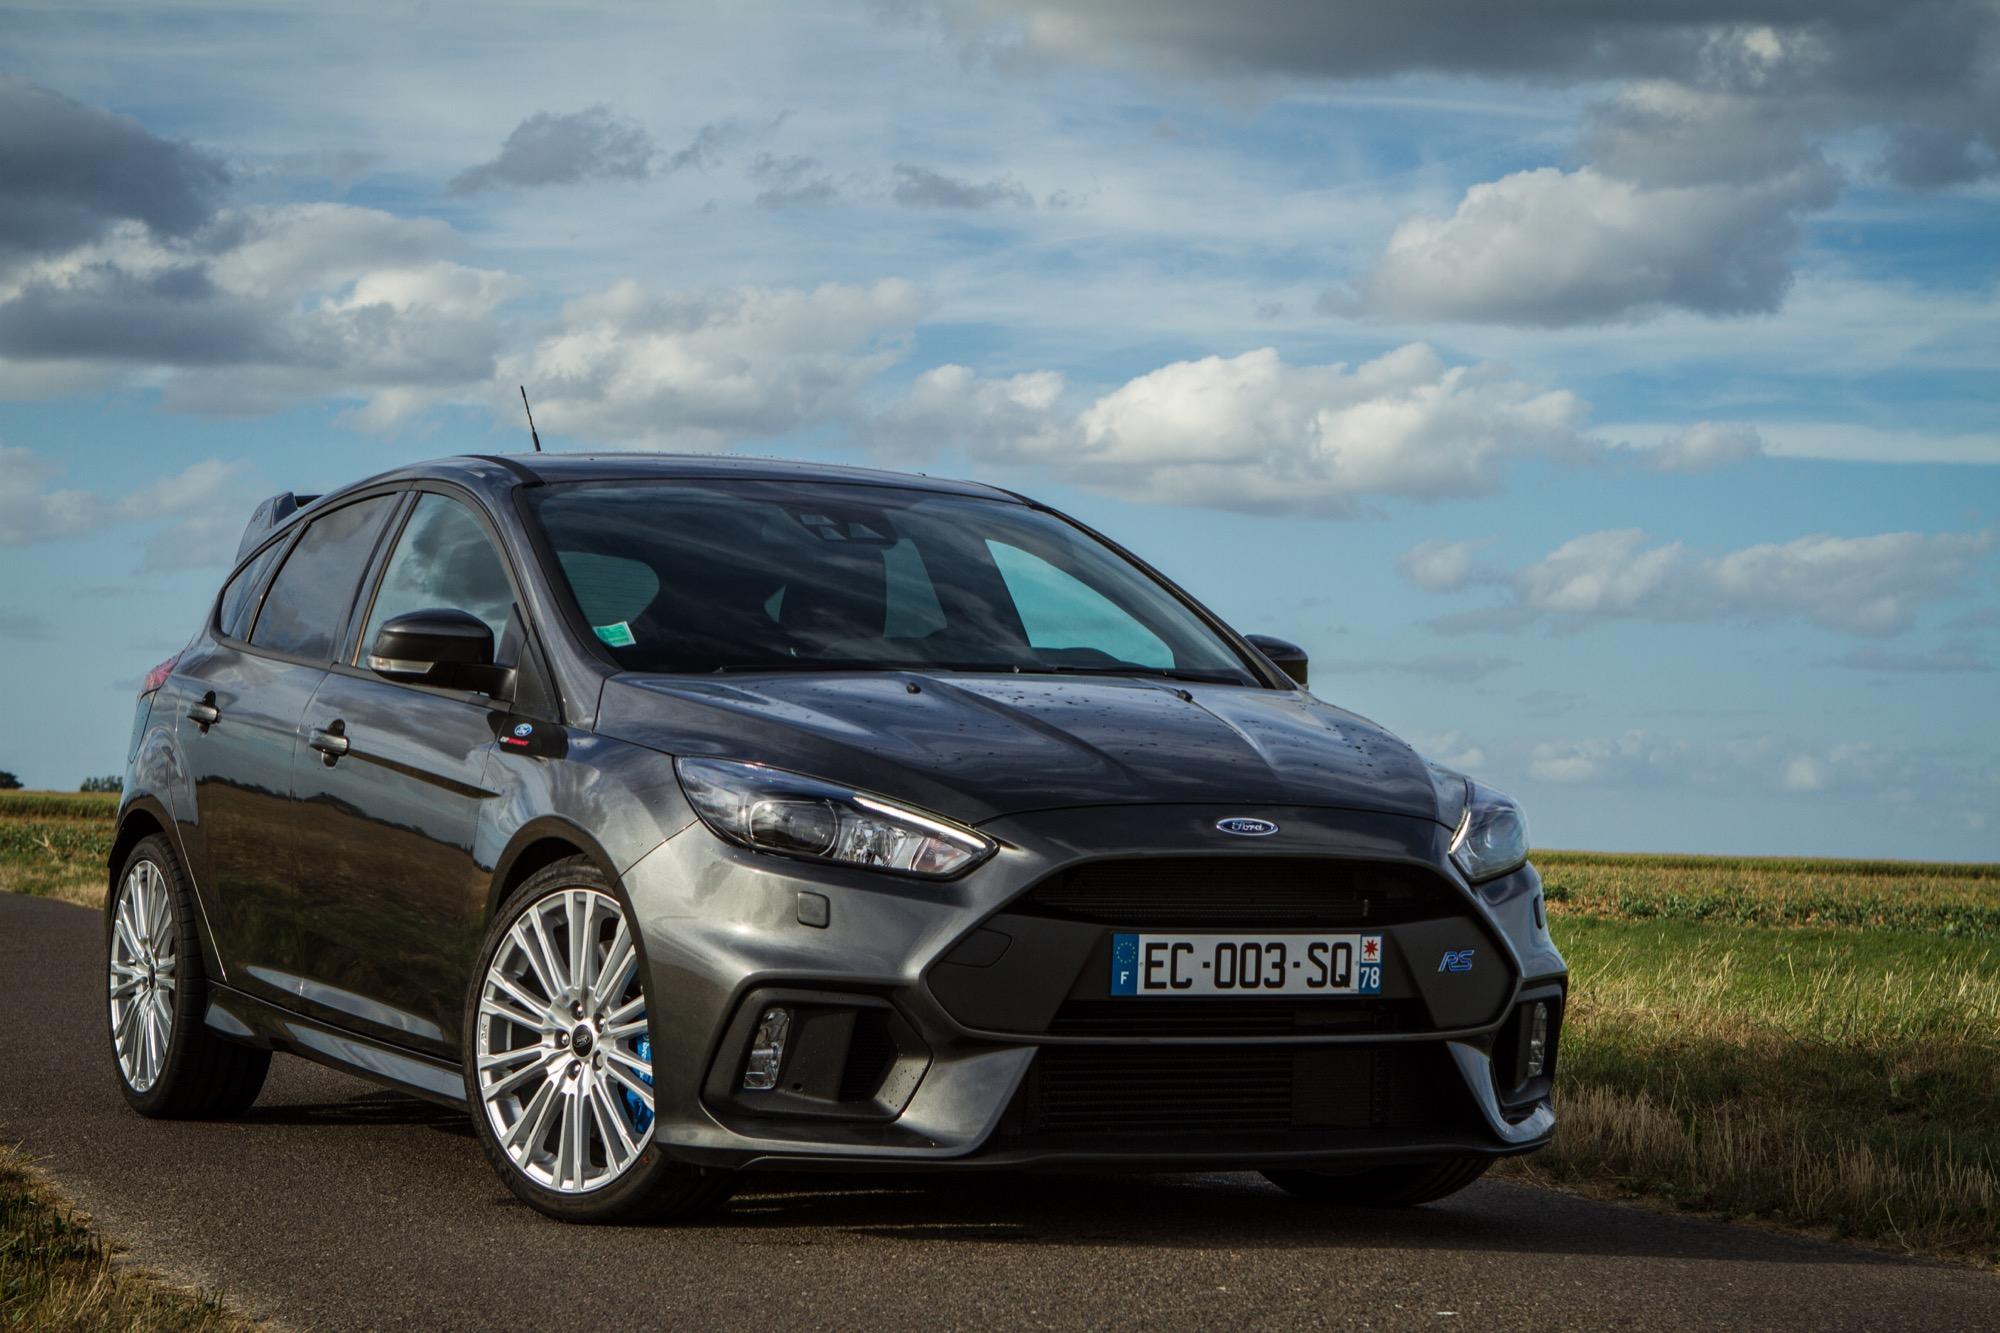 la nouvelle ford focus rs est l 39 essai puriste et vive. Black Bedroom Furniture Sets. Home Design Ideas